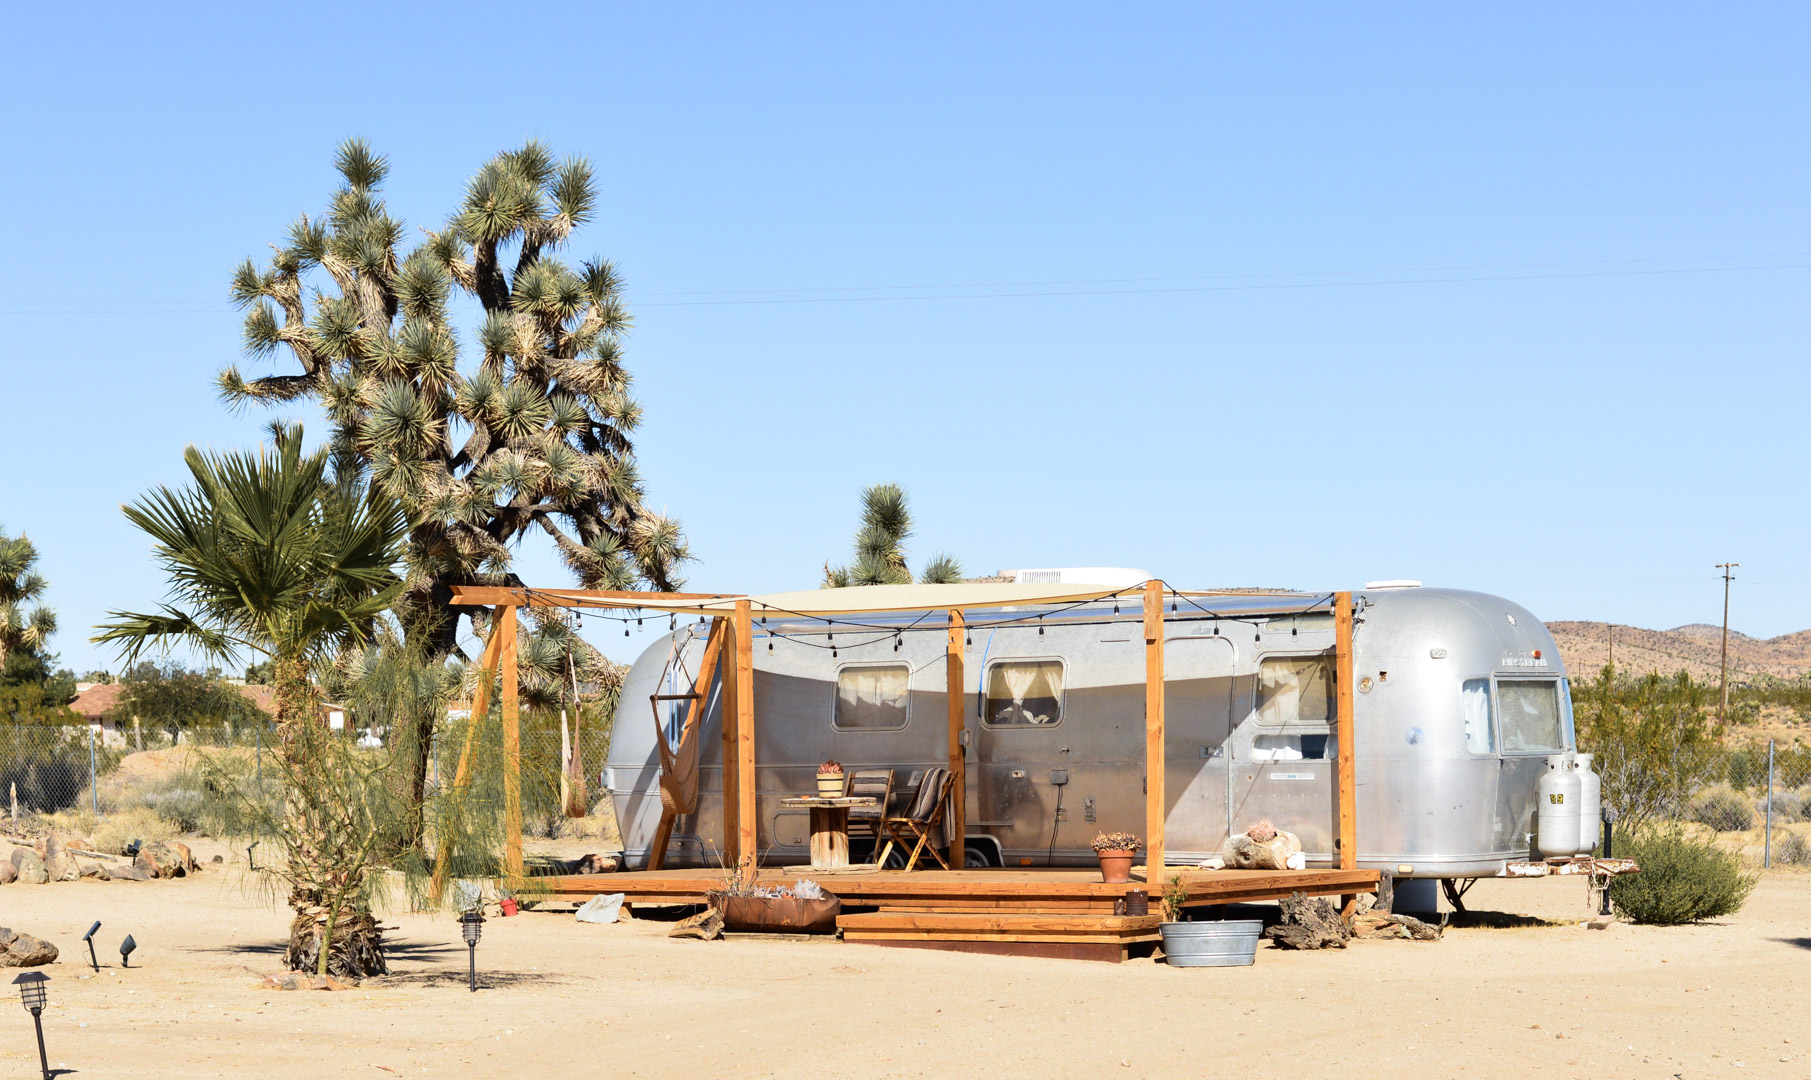 joshua-tree-experience-california-airstream-airbnb-accommodations 7